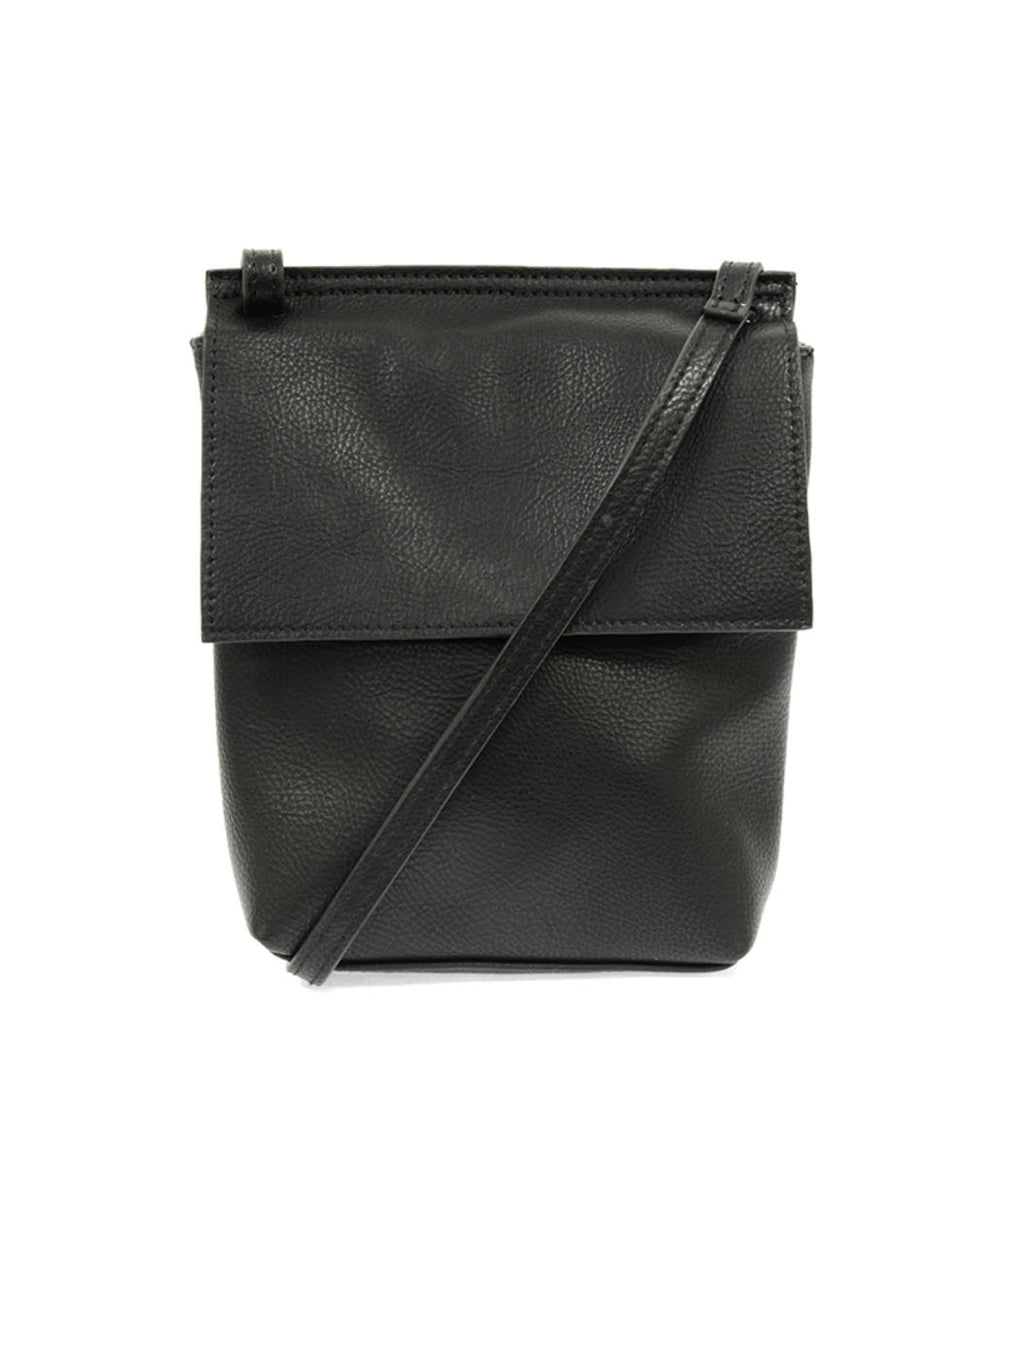 Joy Susan Aimee Bag in Black